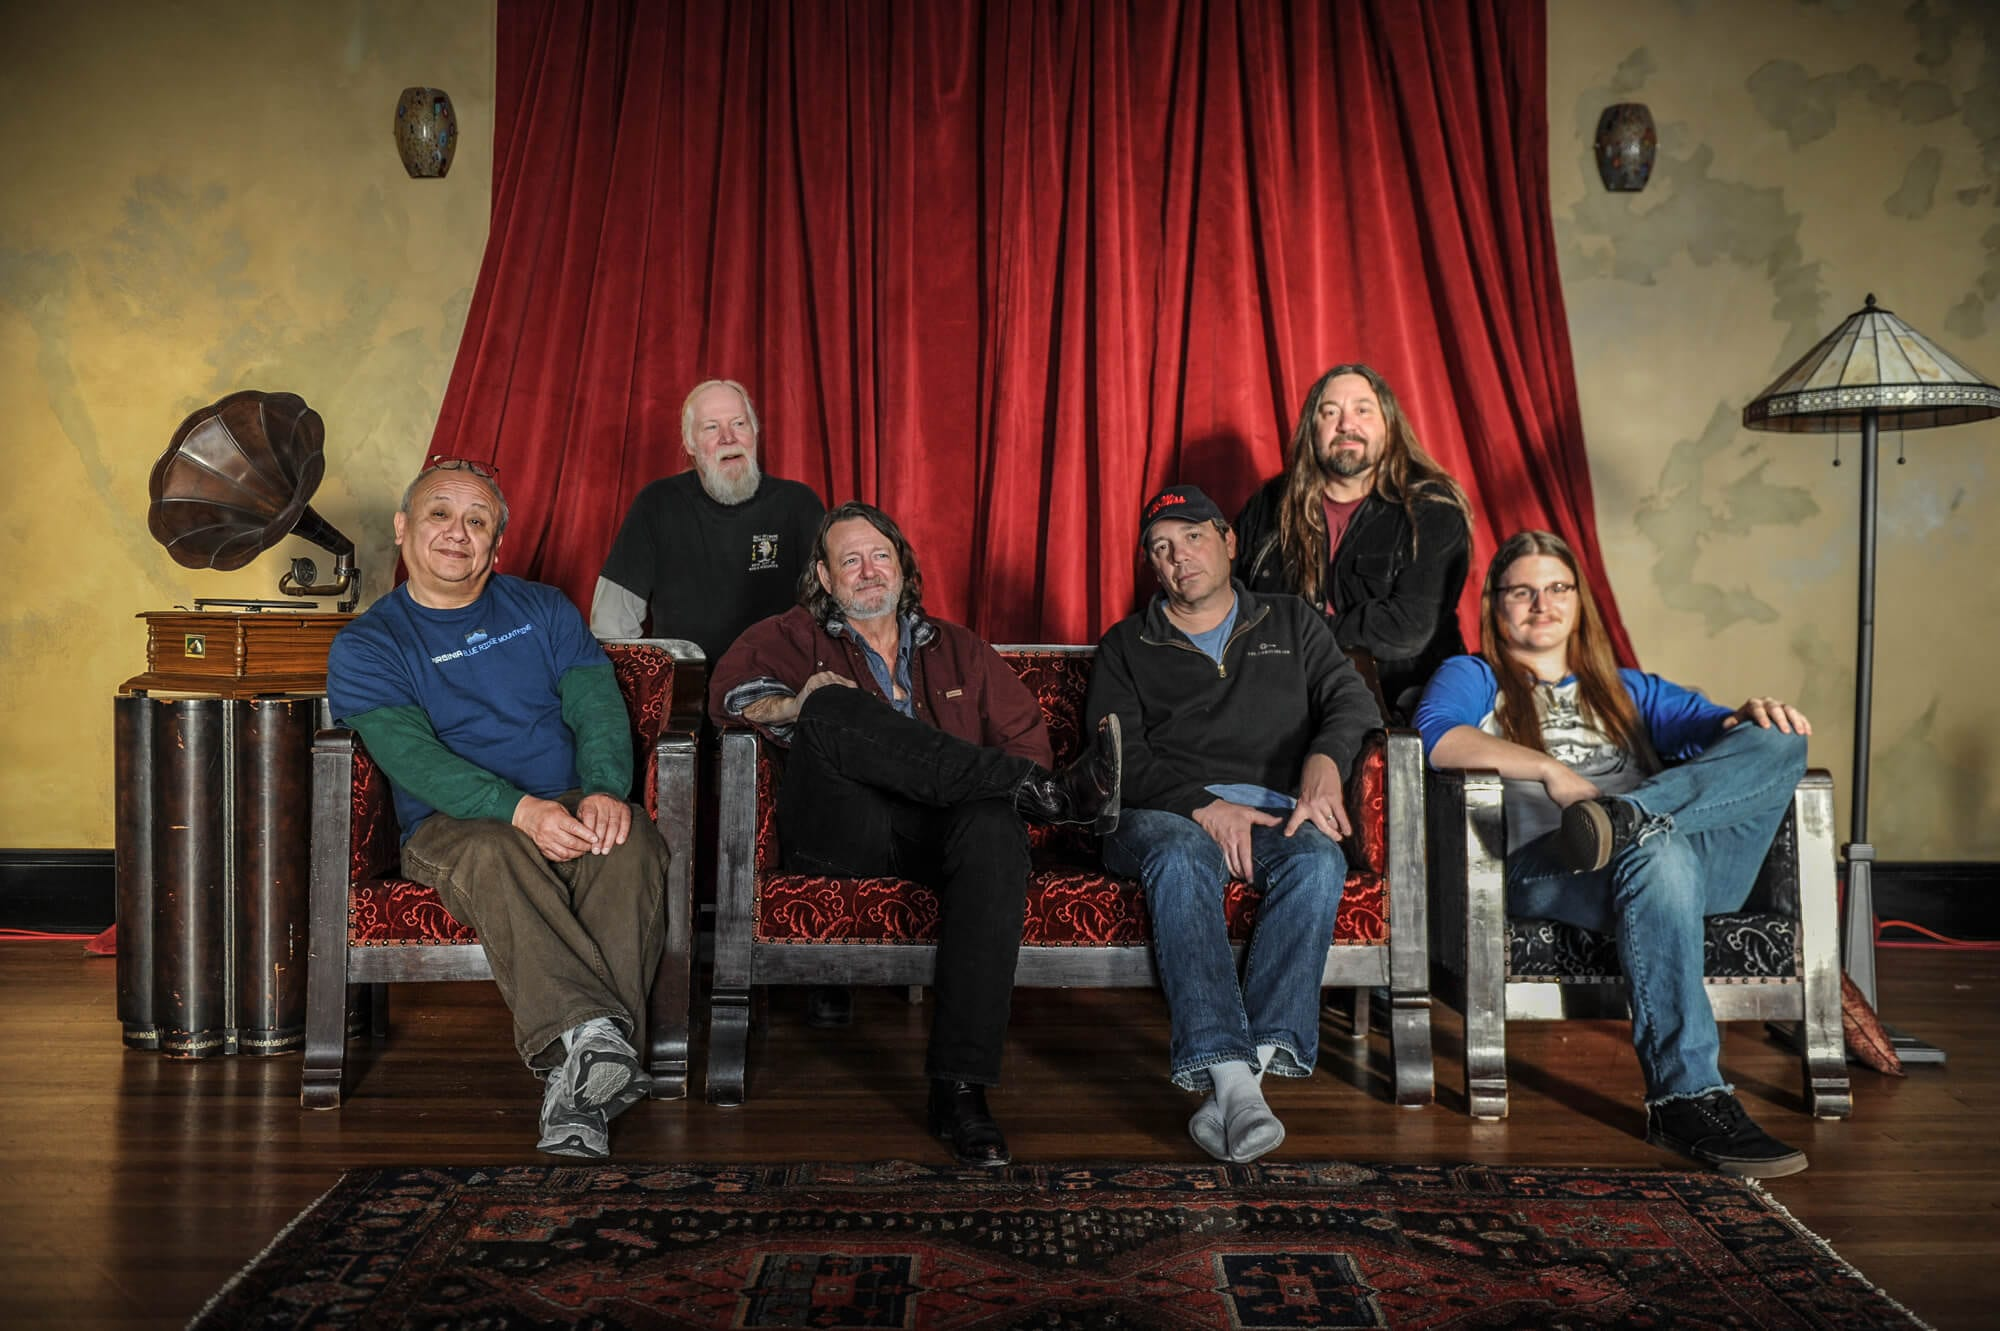 A relaxed group portrait of Widespread Panic.